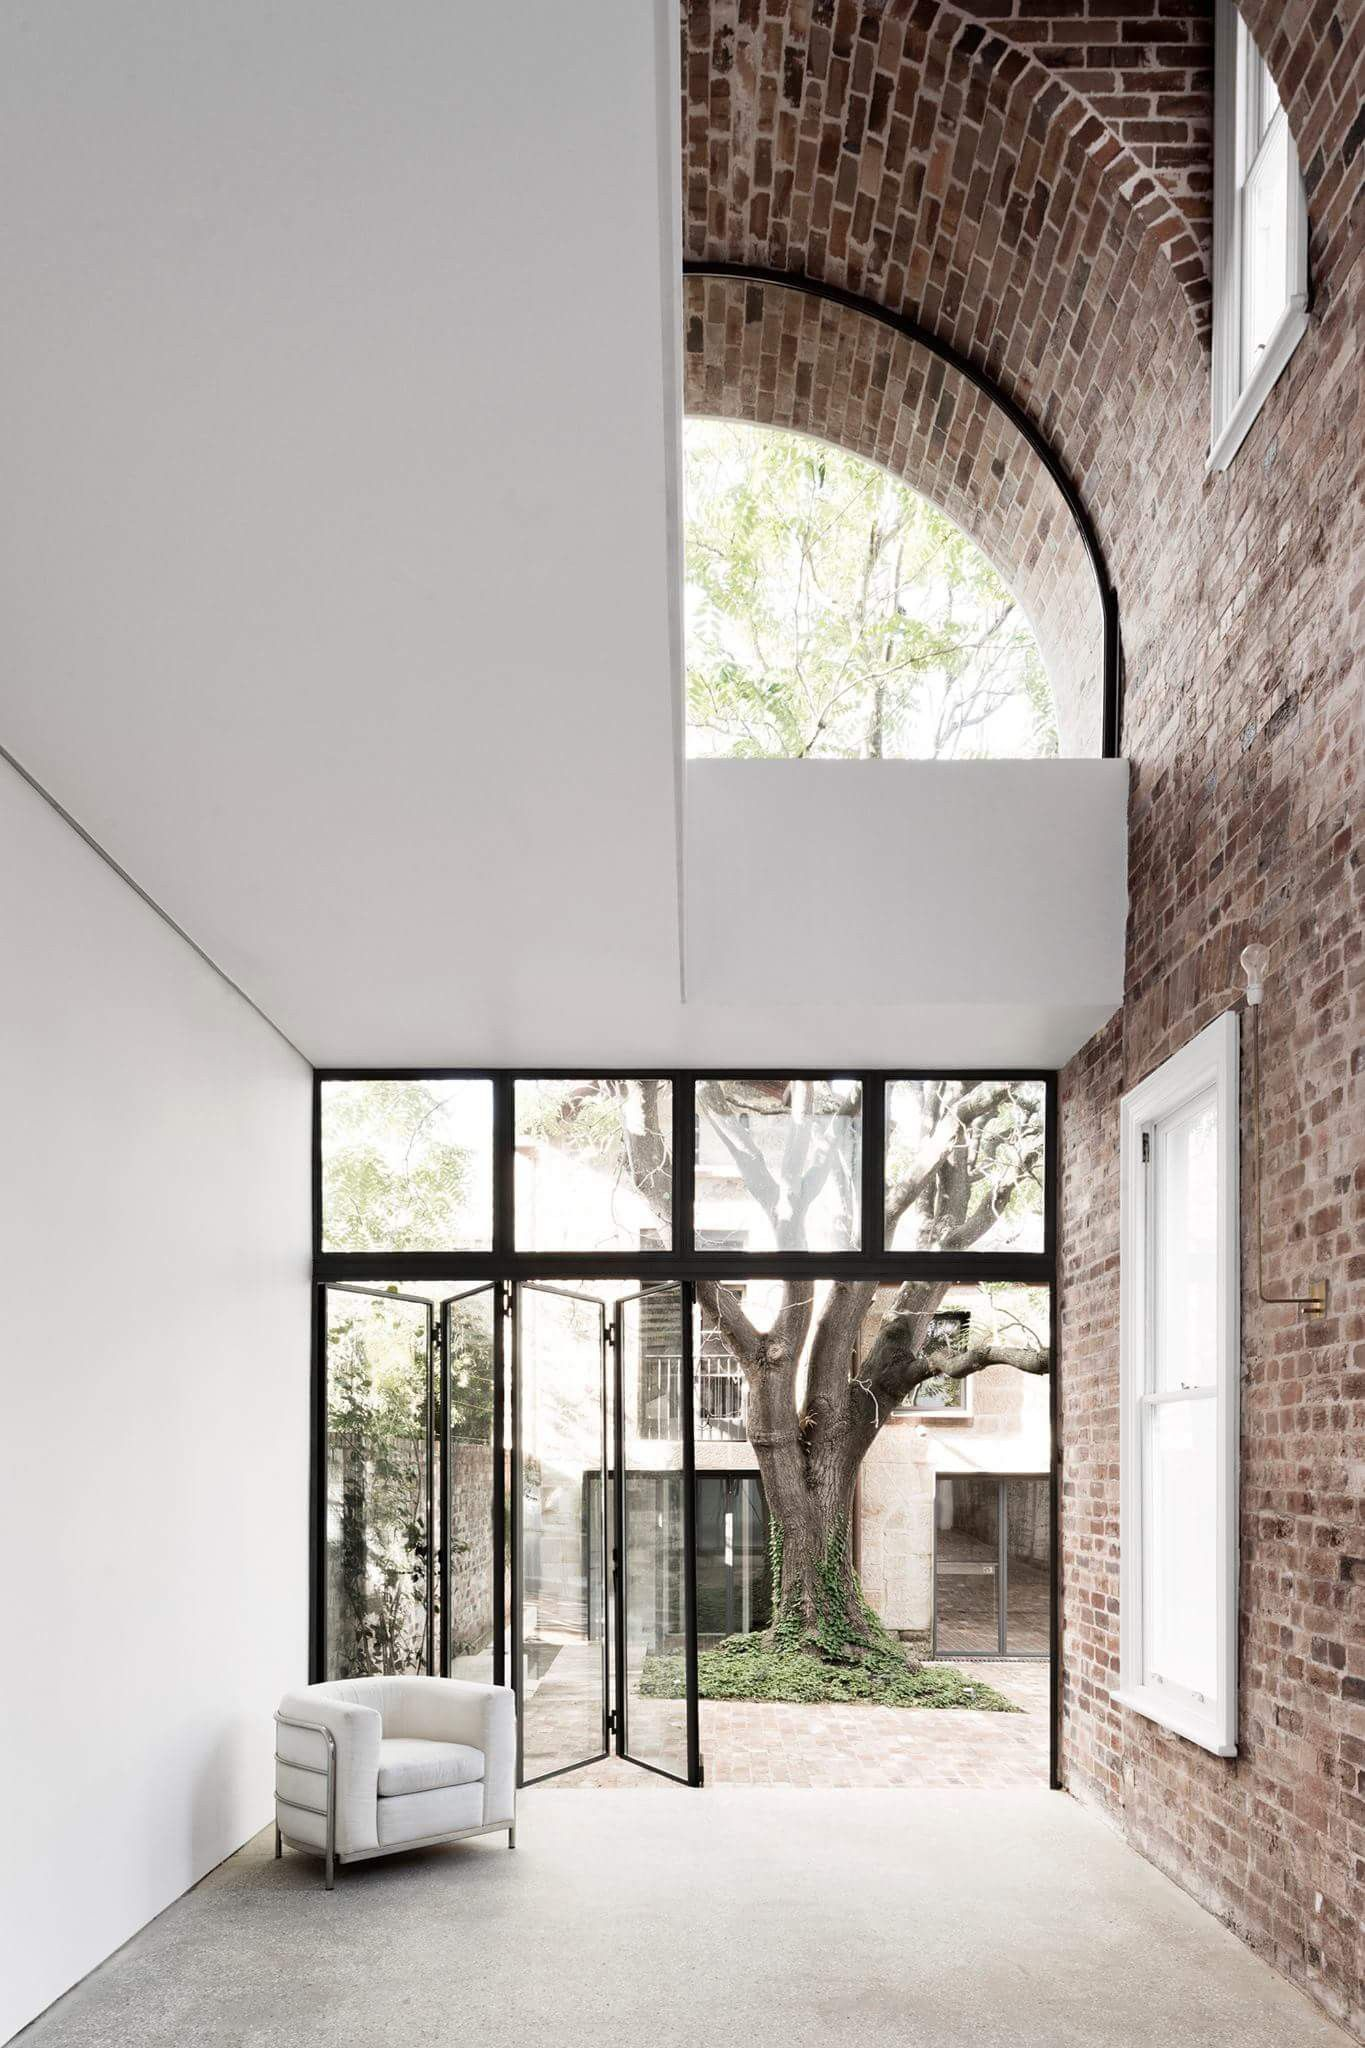 Find This Pin And More On Minimal Architecture By Mariuspottas. Design Ideas